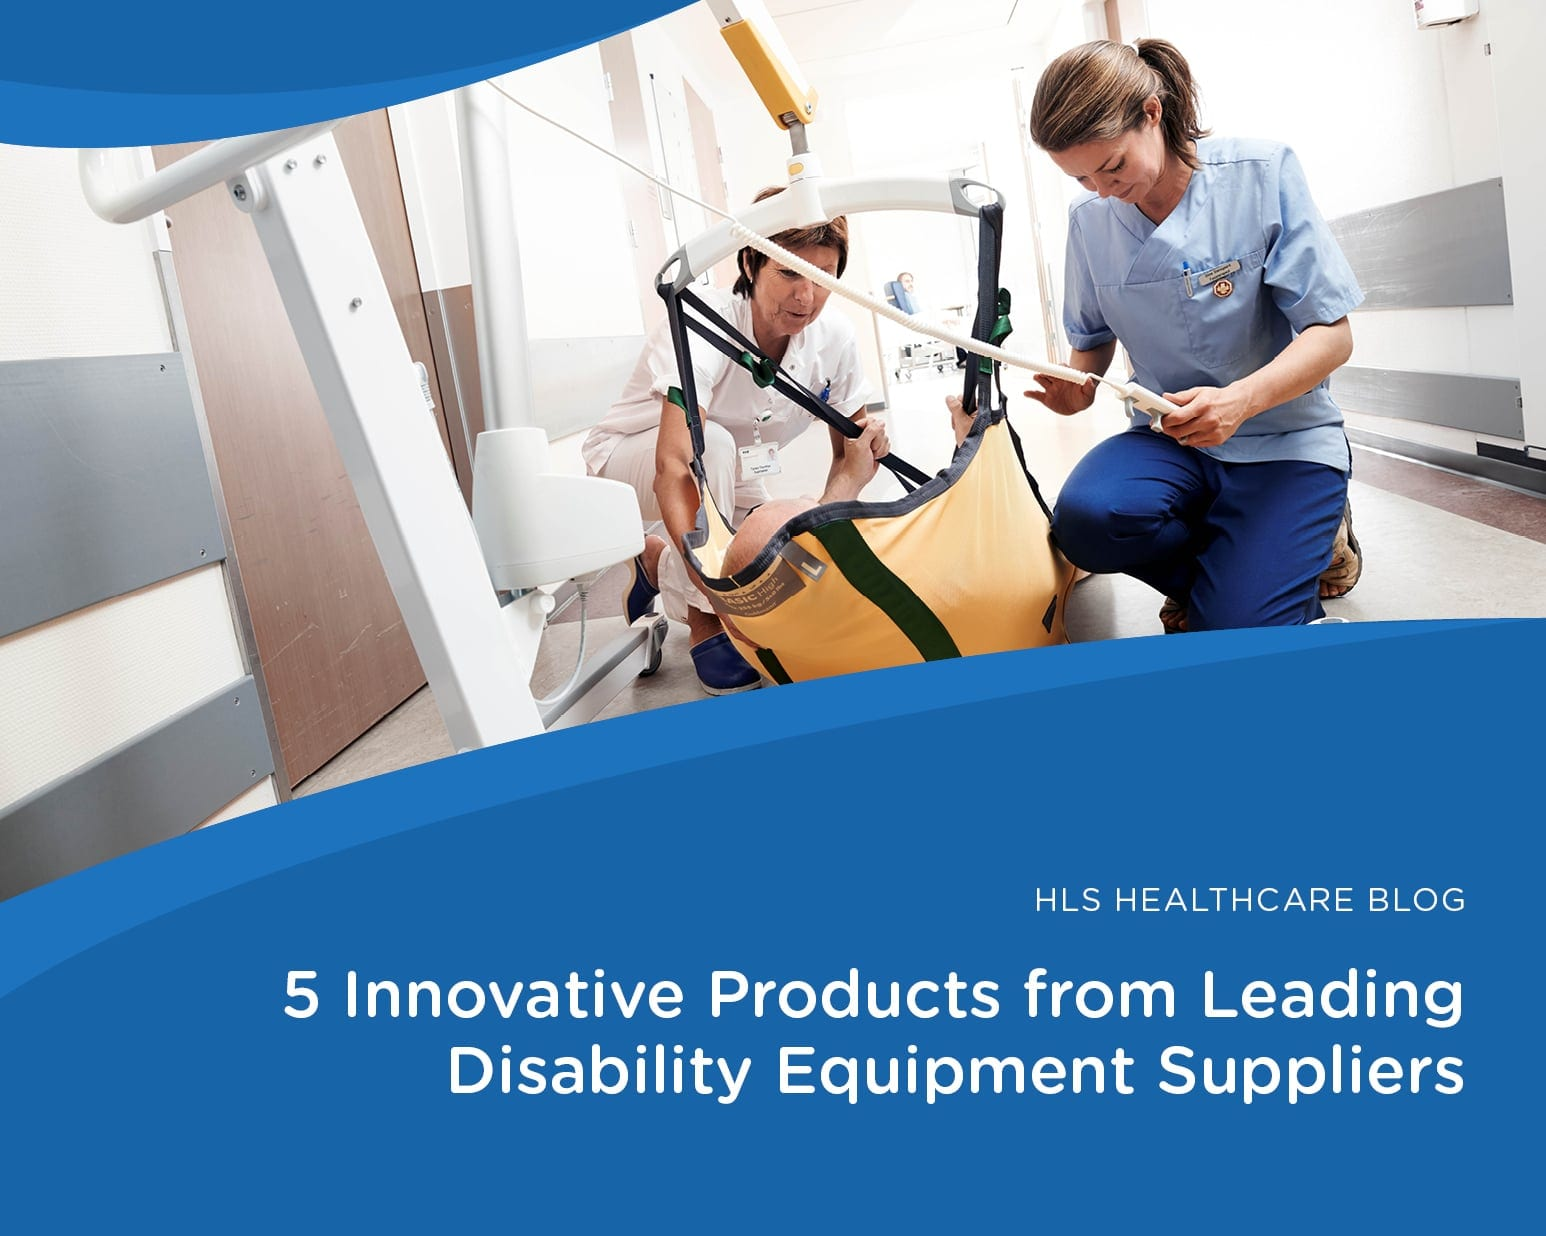 5 Innovative Products from Leading Disability Equipment Suppliers